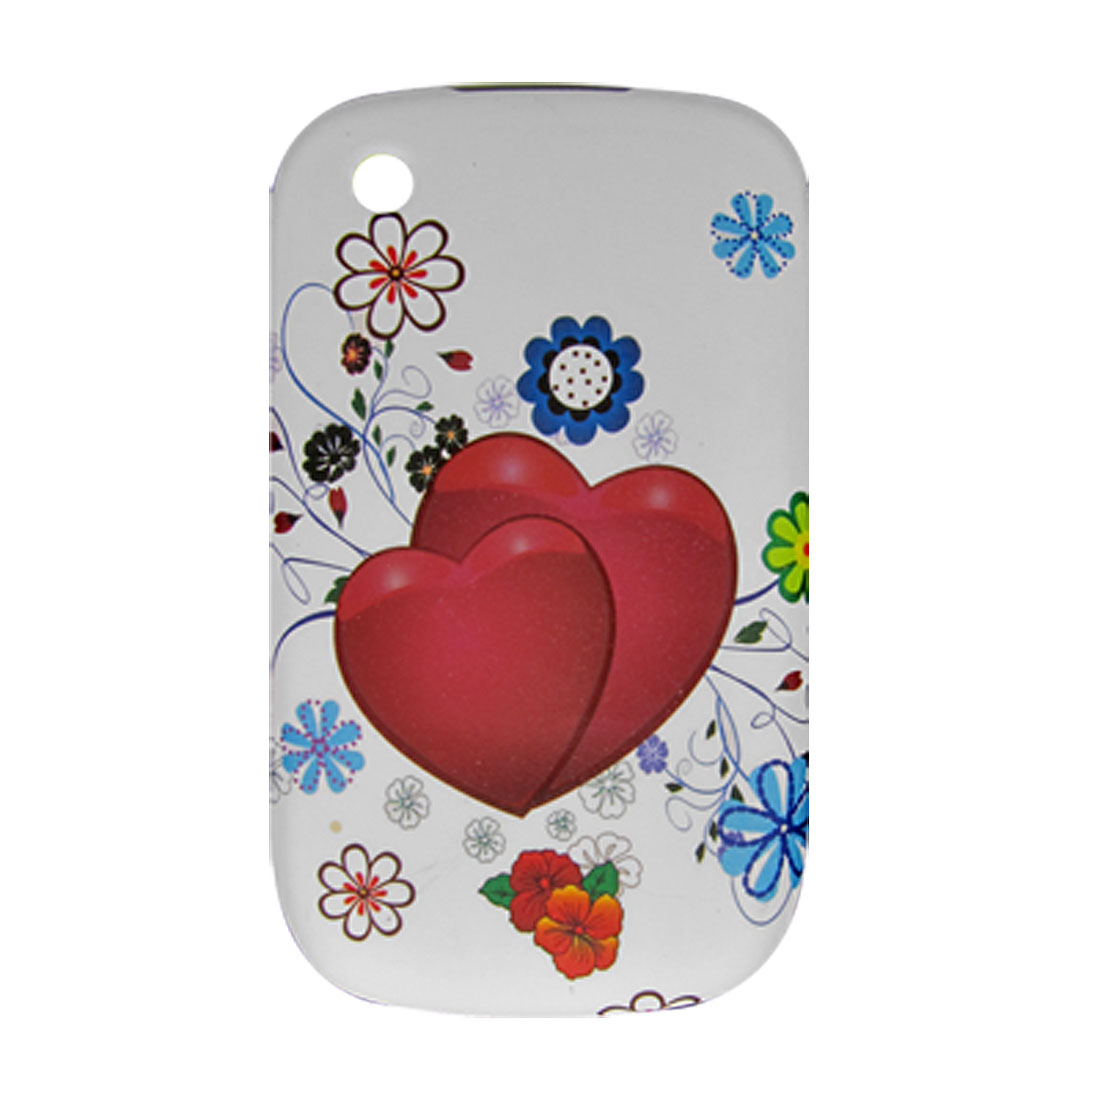 Red Heart Print Rubberized Plastic Case Cover for Blackberry 8520